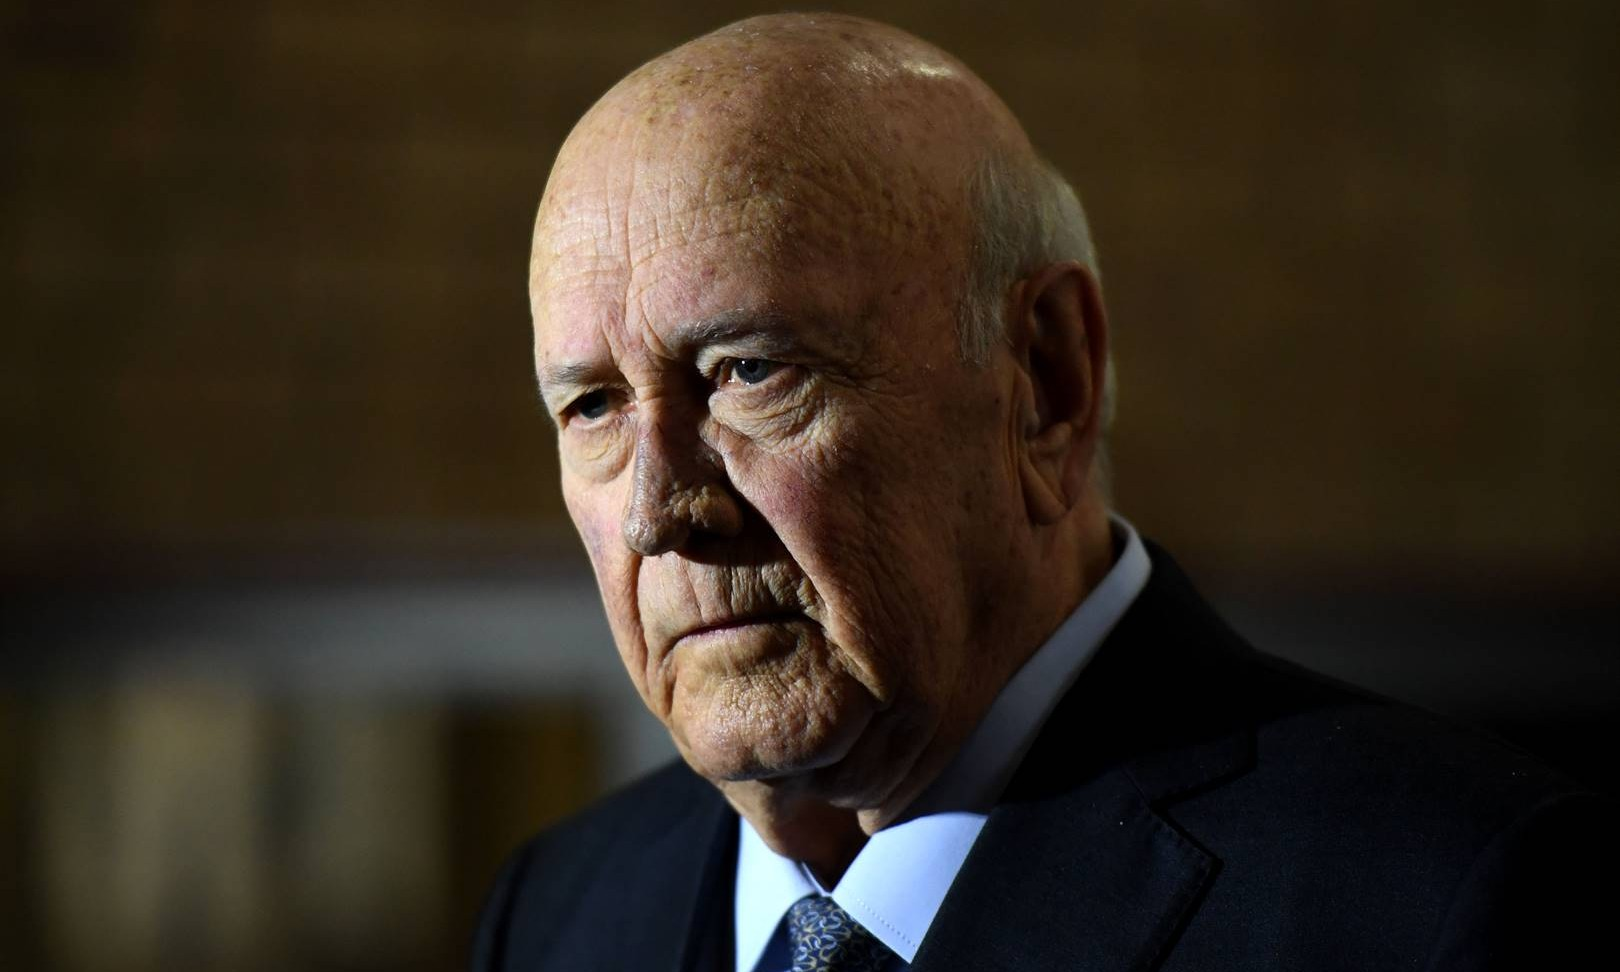 De Klerk Foundation withdraws diluted apartheid description